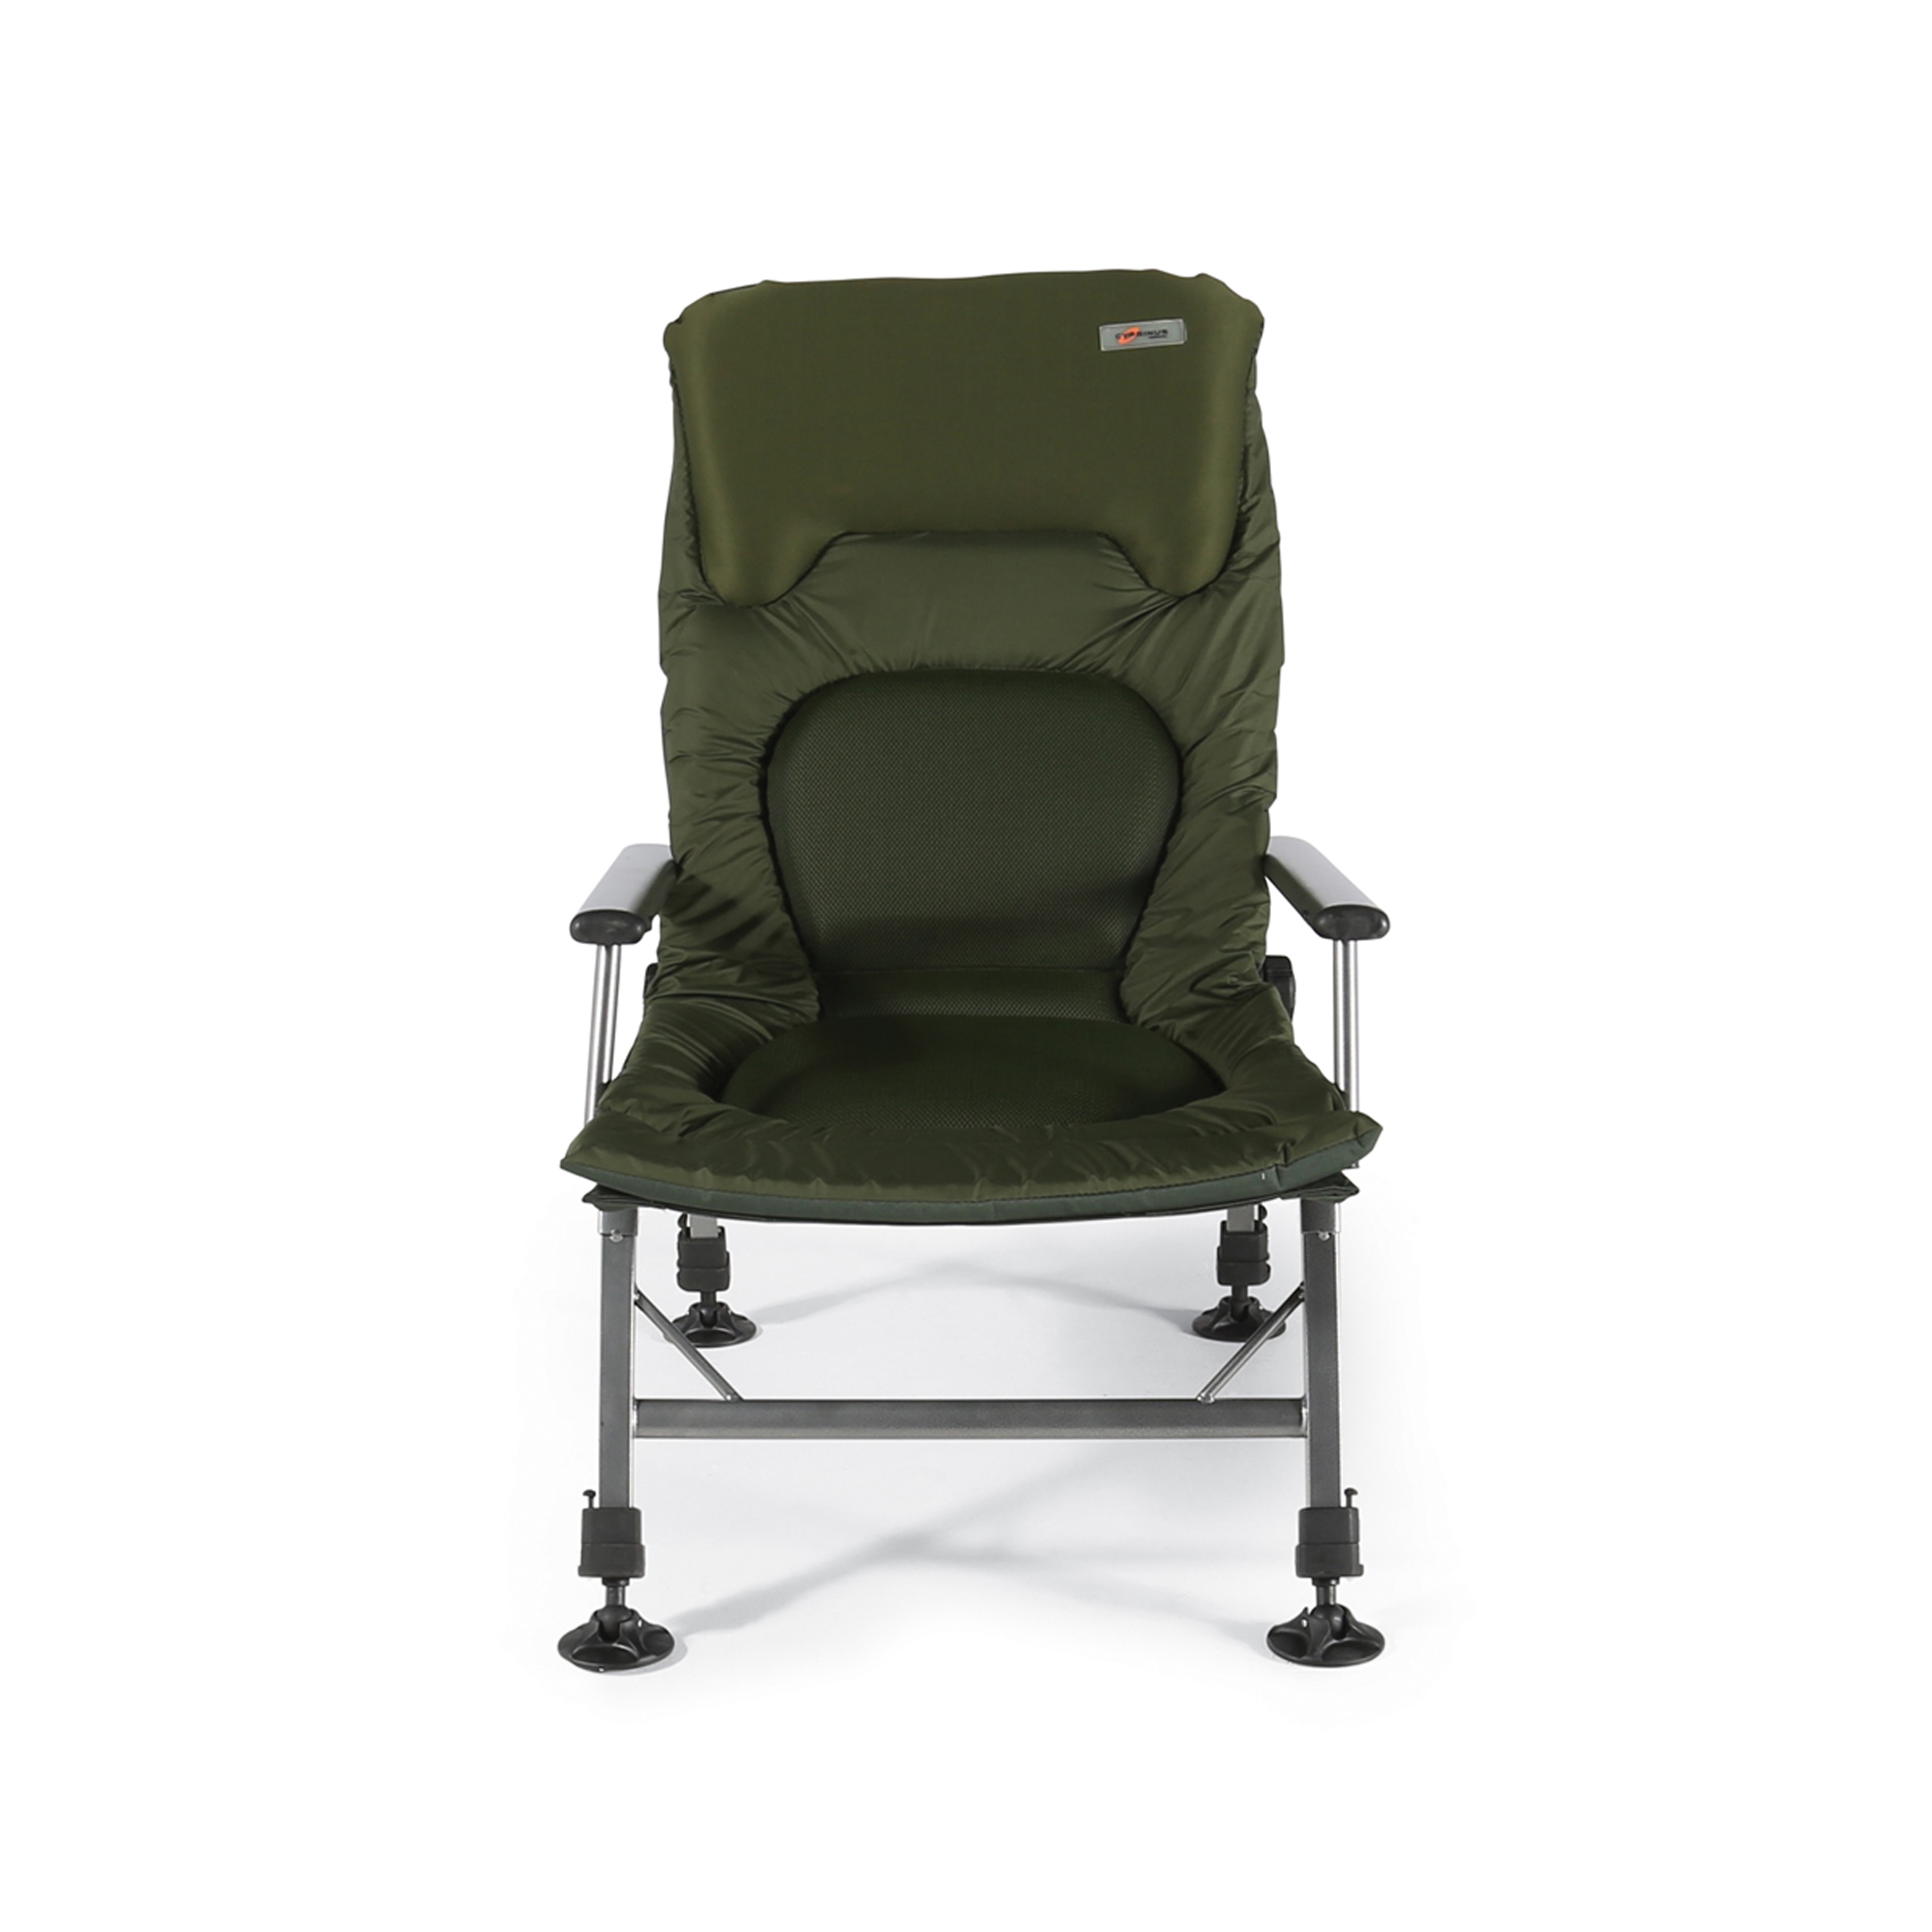 fishing chair with arms mesh desk cyprinus zoneout extra padded lightweight reclining